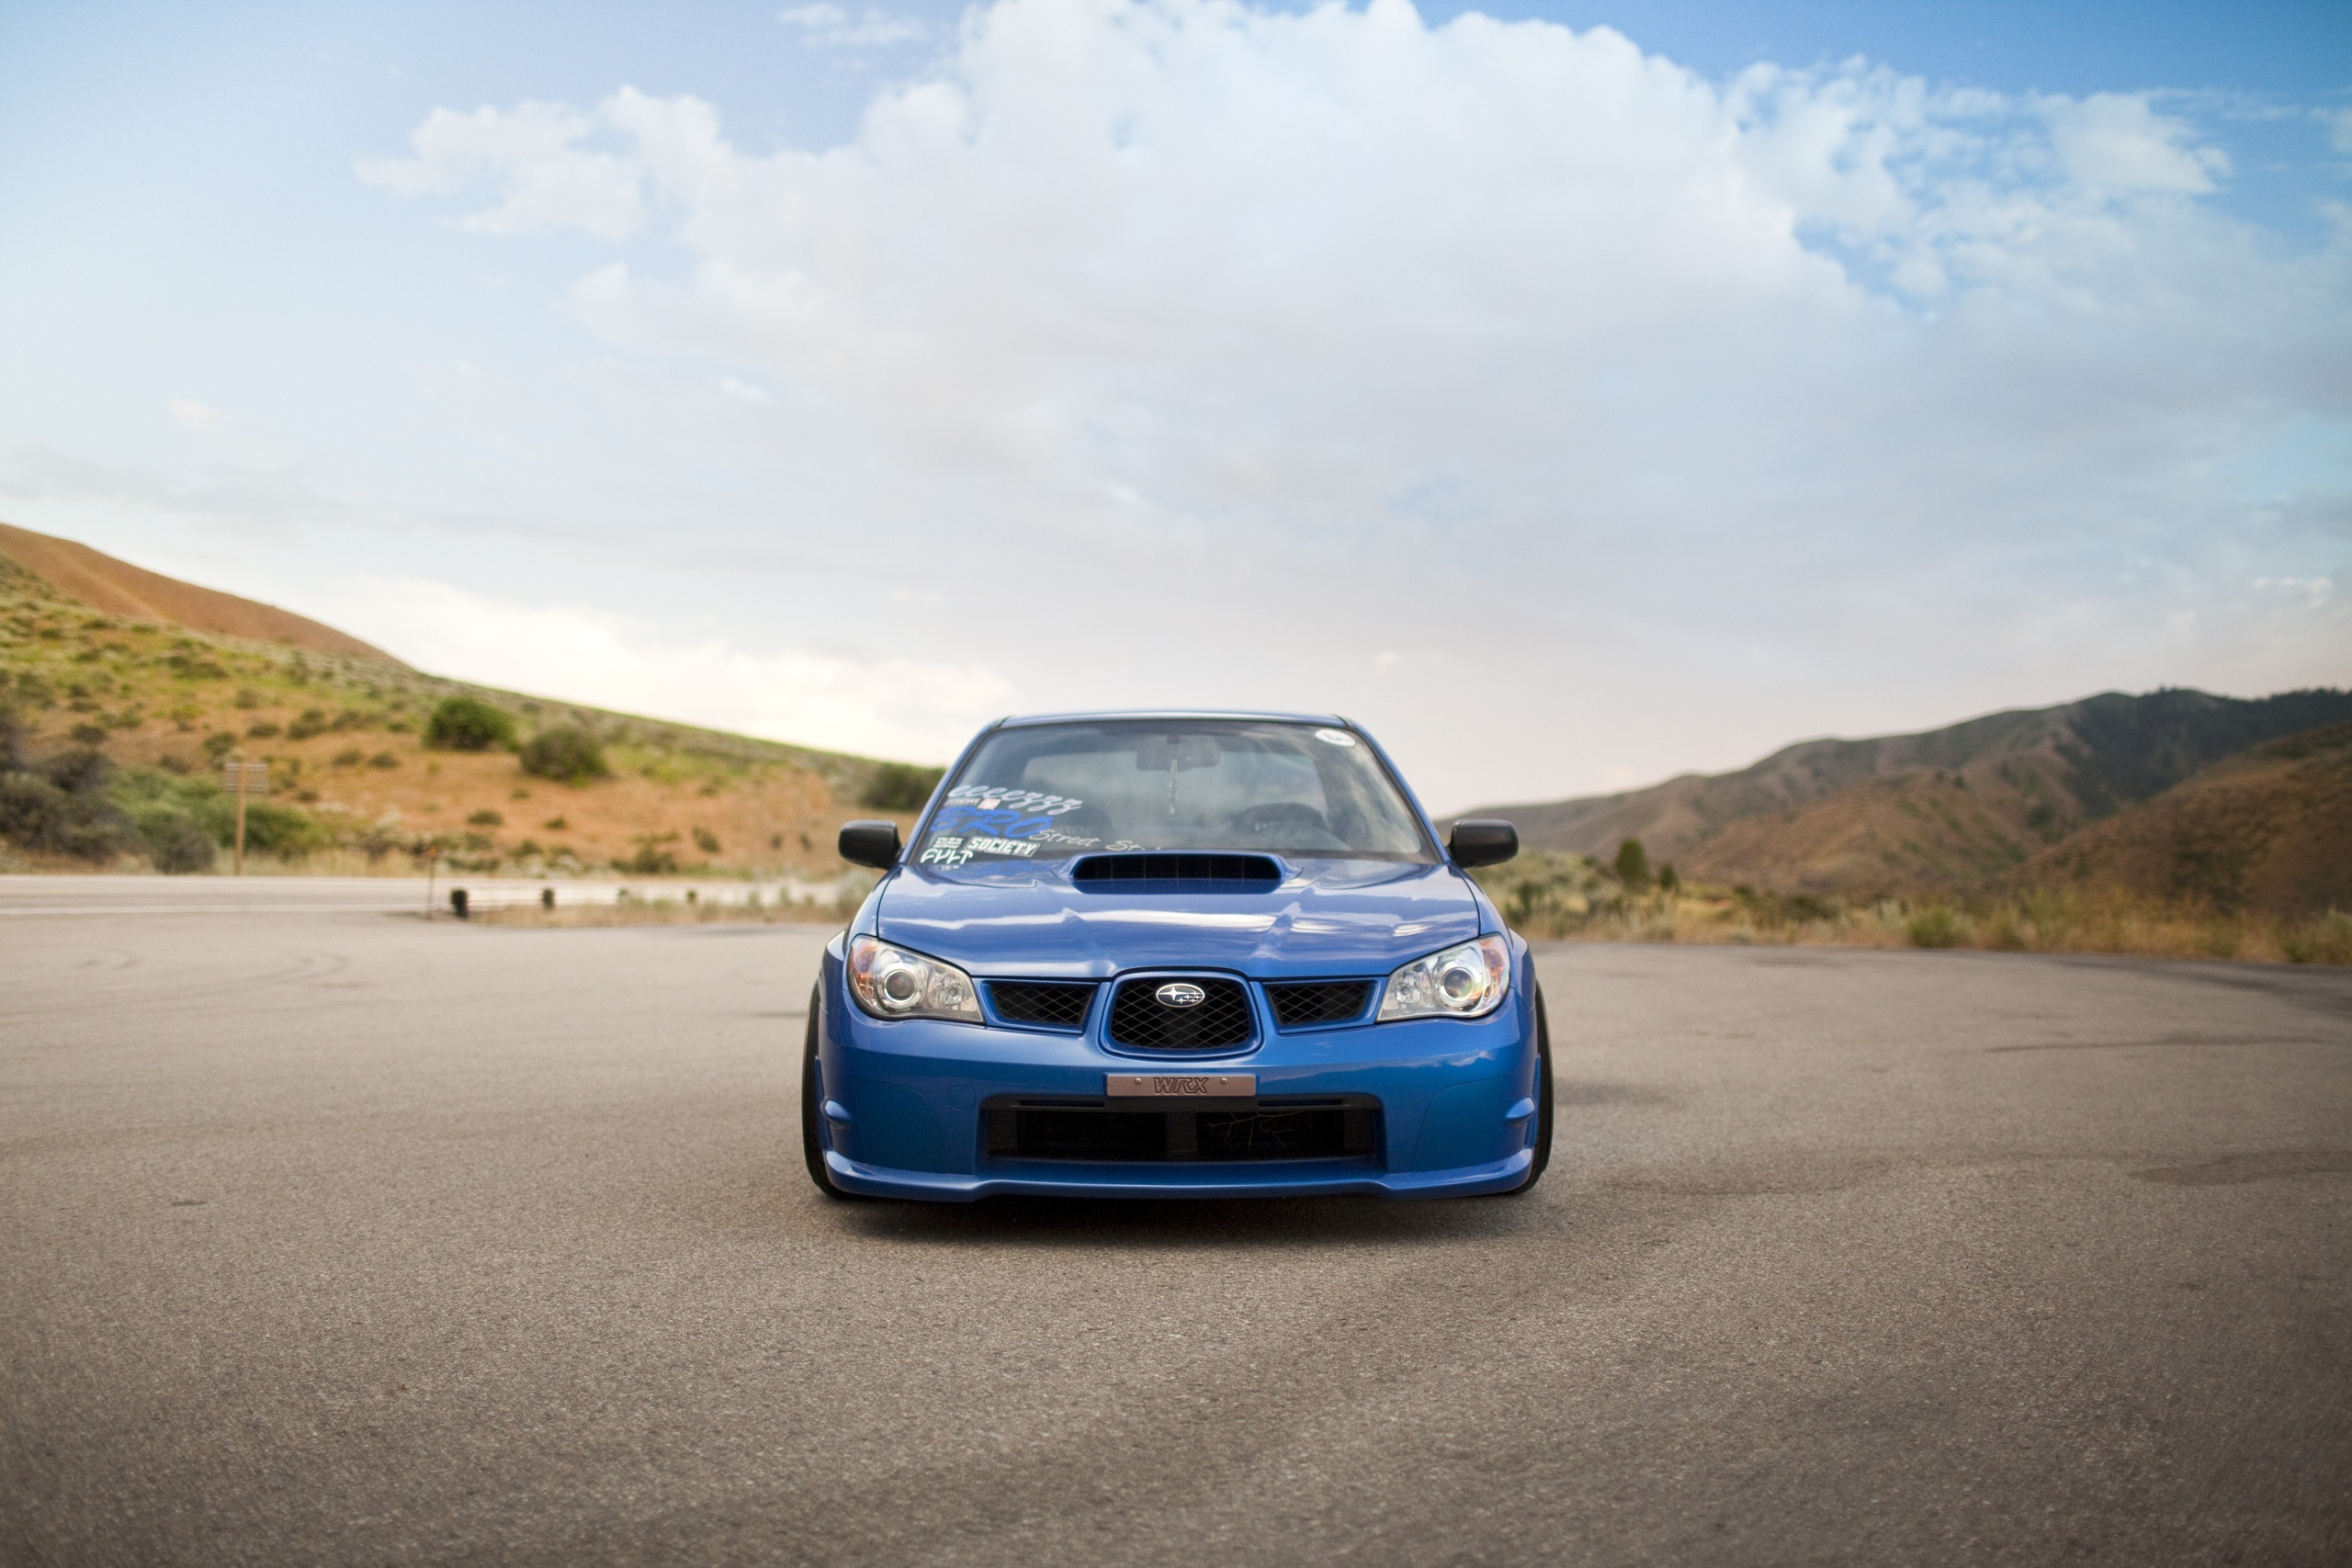 38566 download wallpaper Transport, Auto, Subaru screensavers and pictures for free